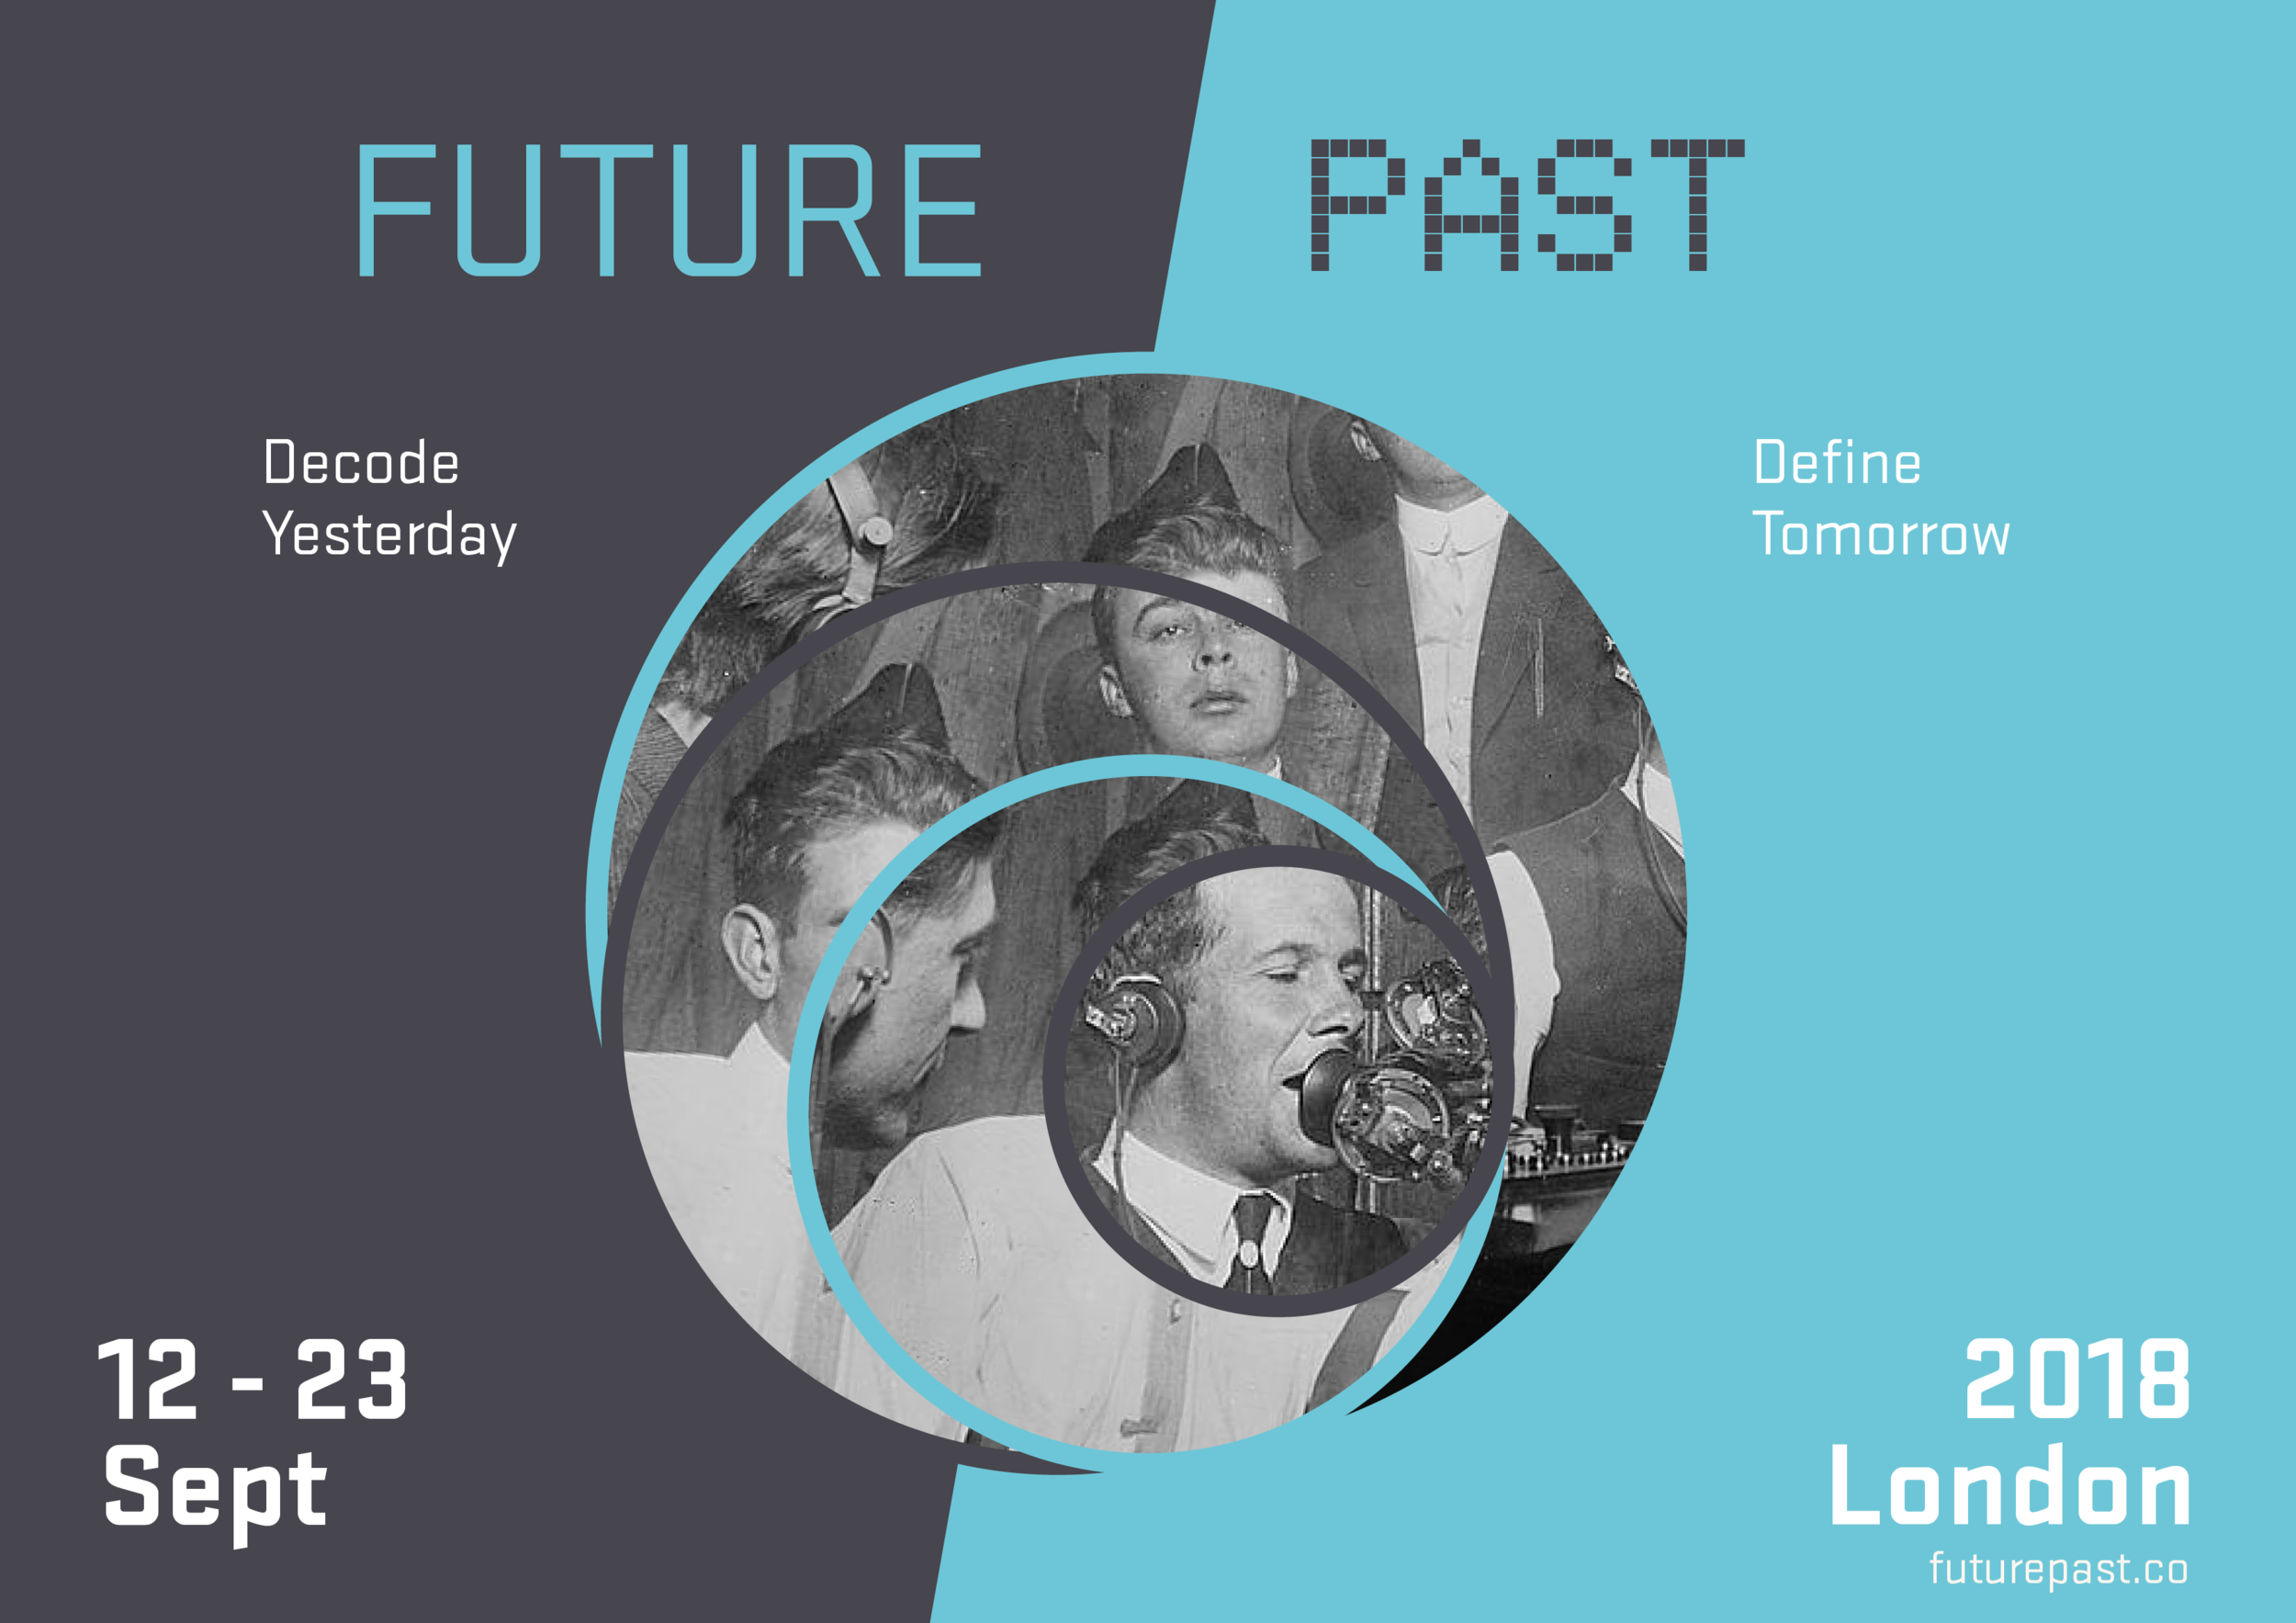 Poster for an event which looks to the past to understand the future